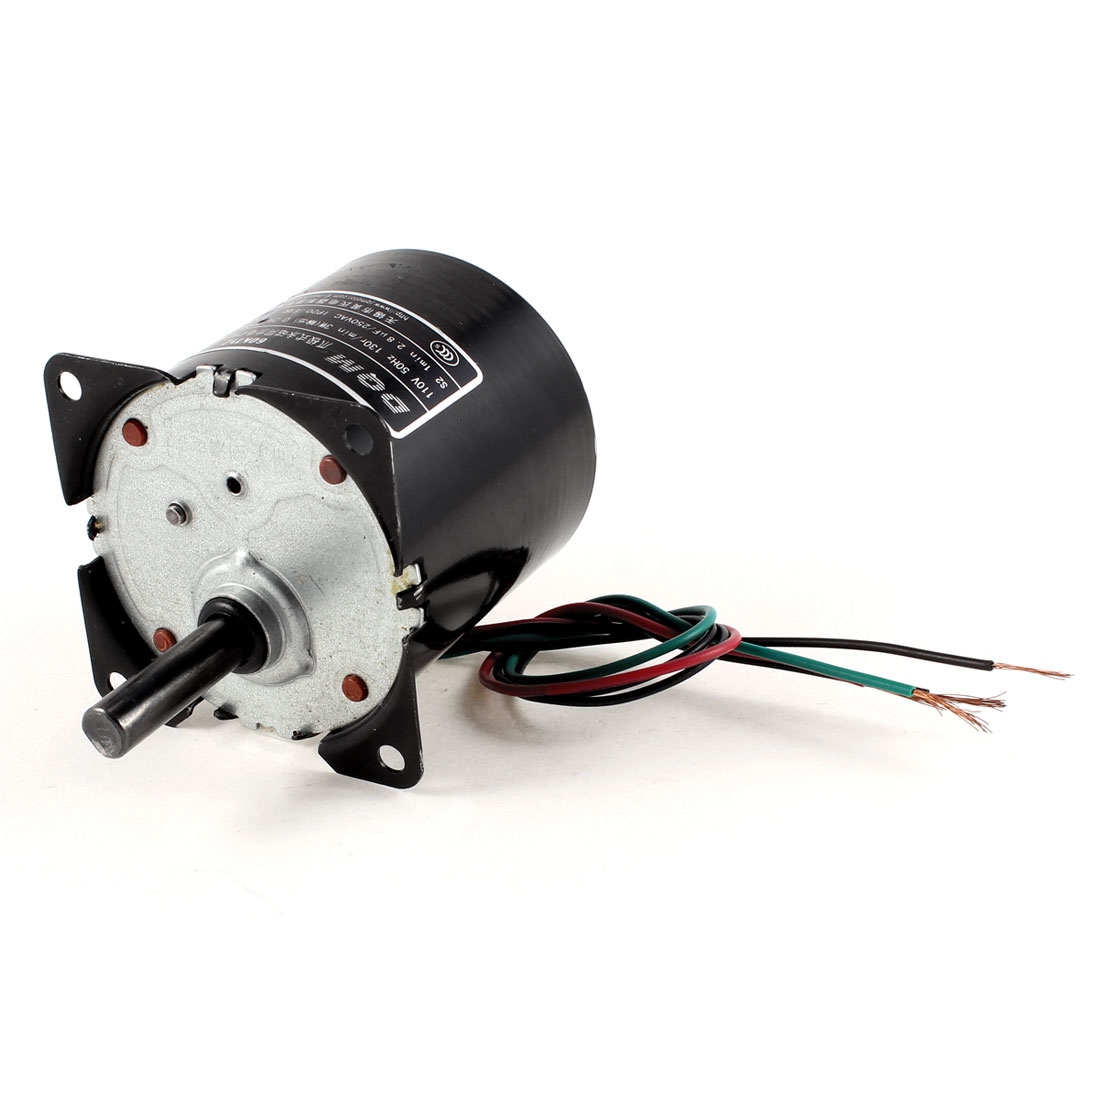 Uxcell(R) AC 110V 0.2A 3W 130r/min Speed 8mm Shaft Diameter Synchronous Gear Motor